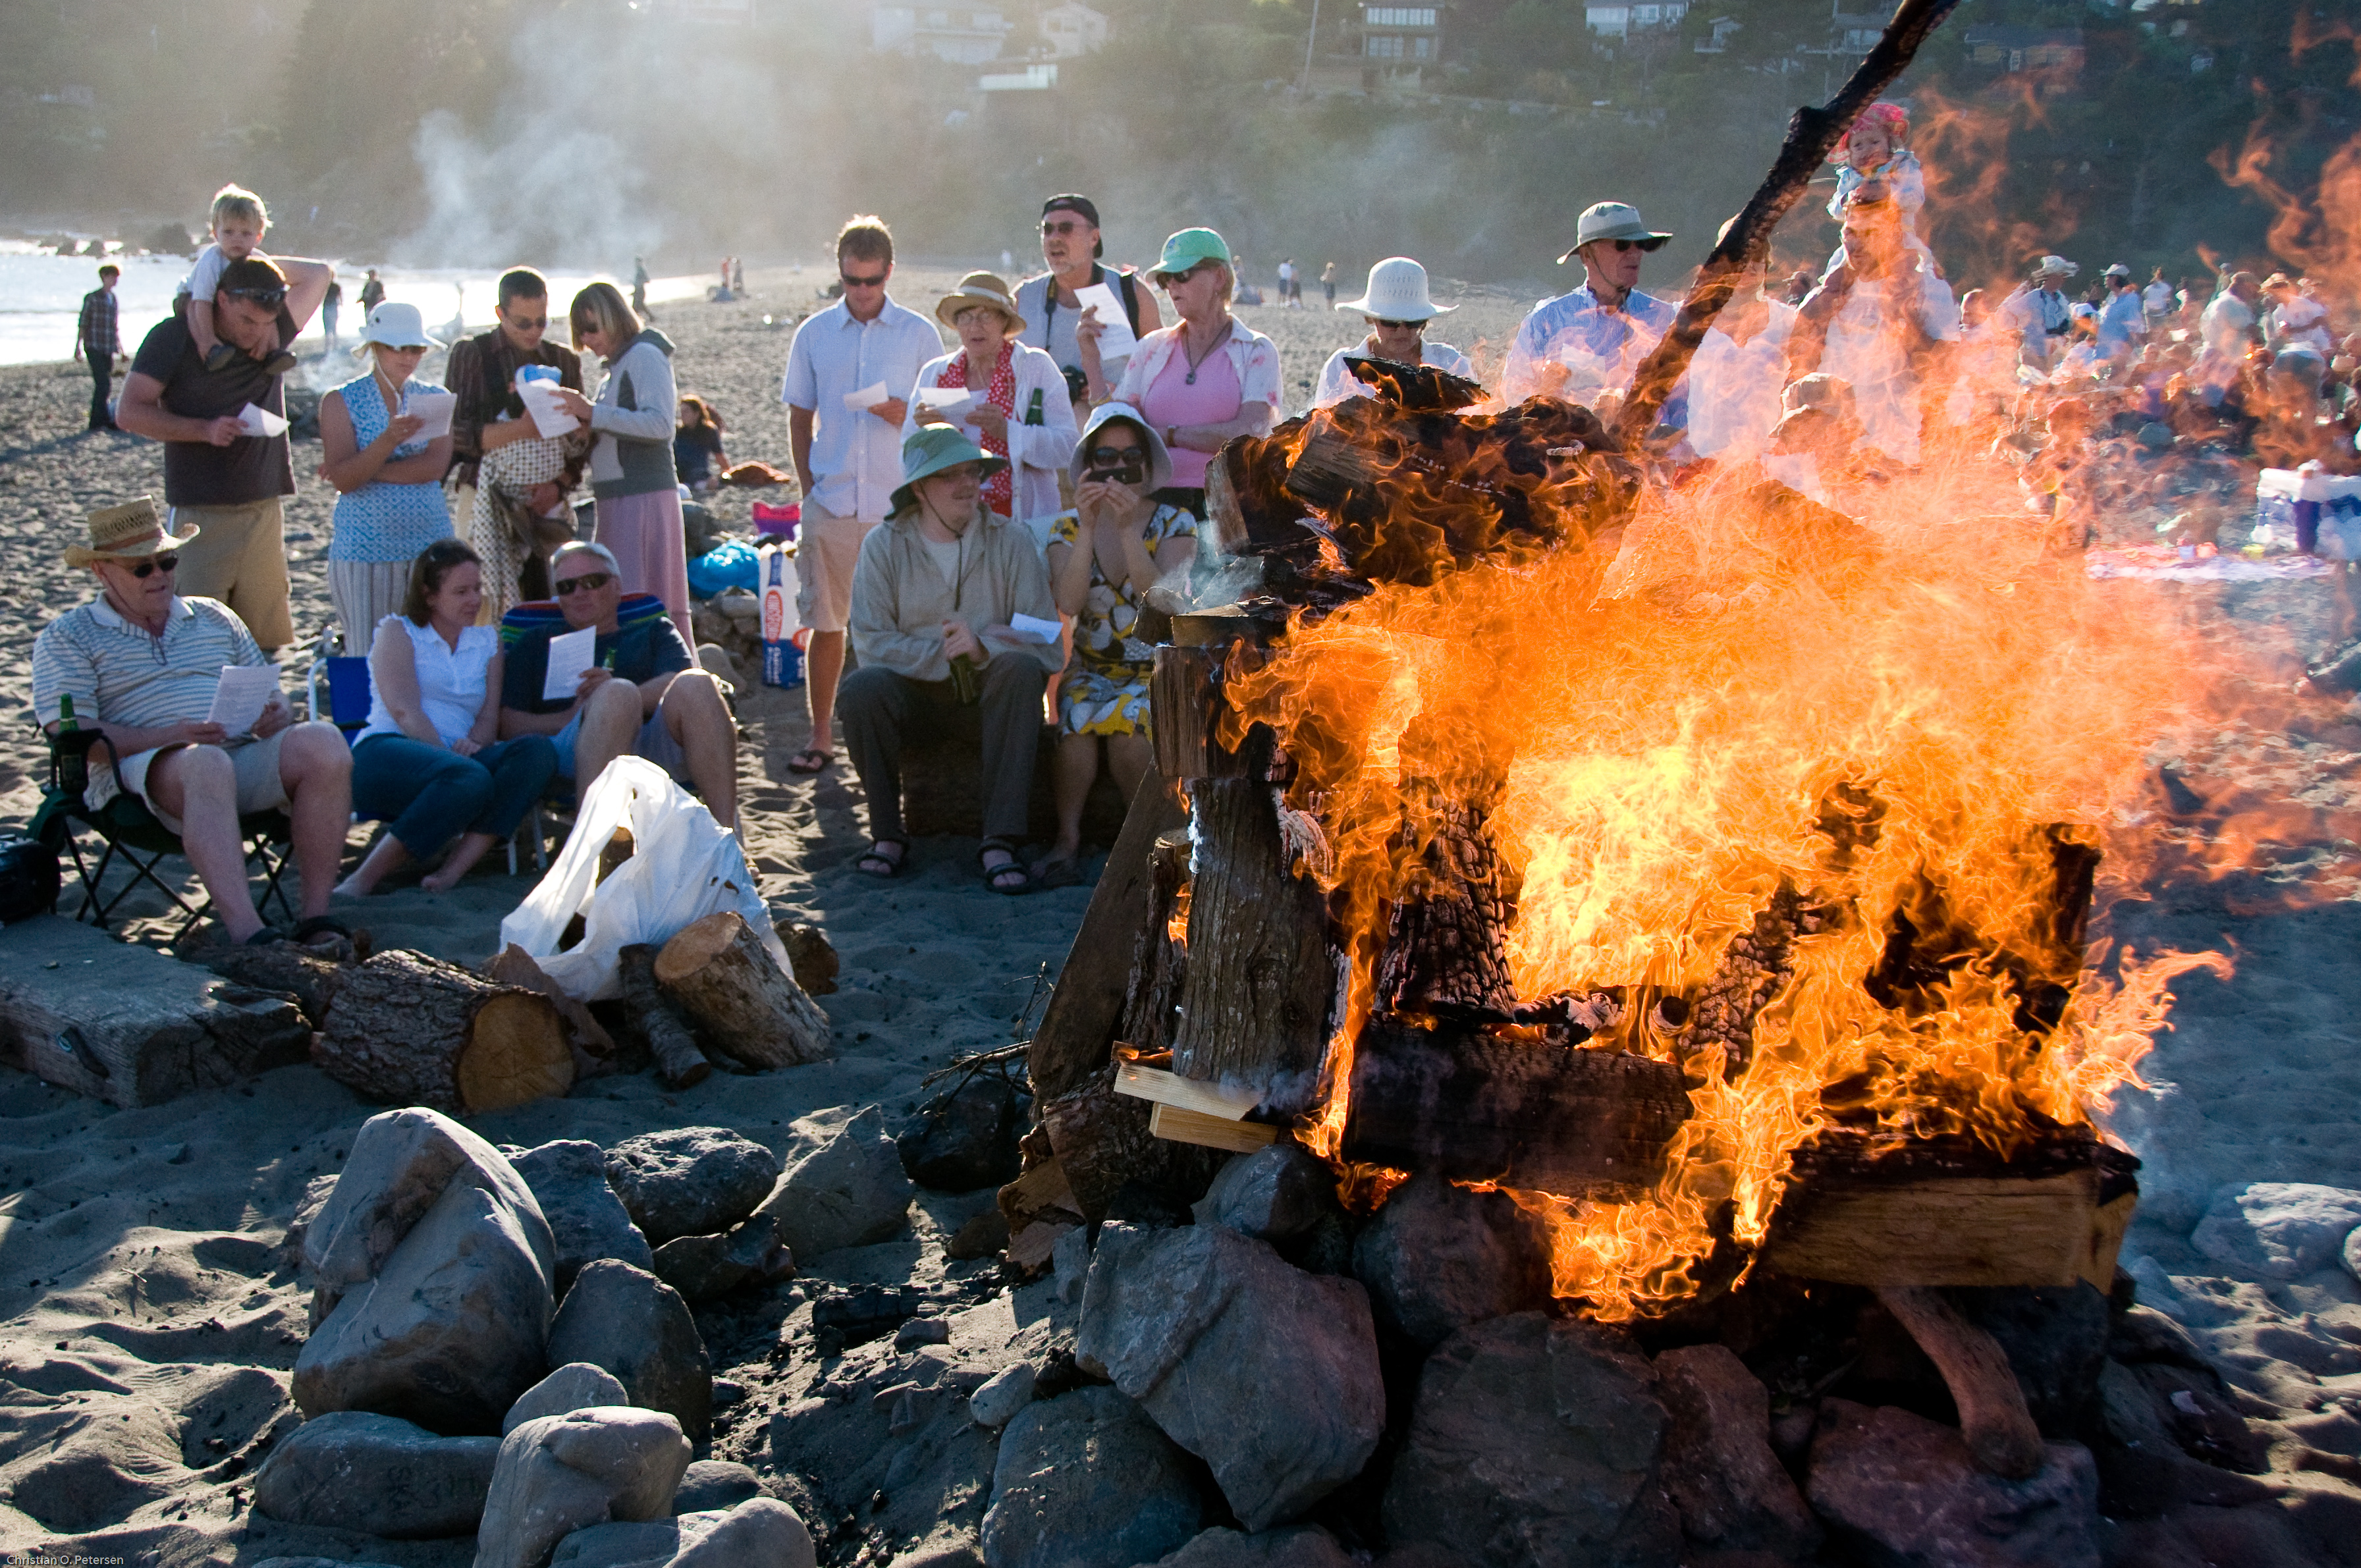 Danes celebrating Midsummer by singing the Midsummer hymn by the bonfire